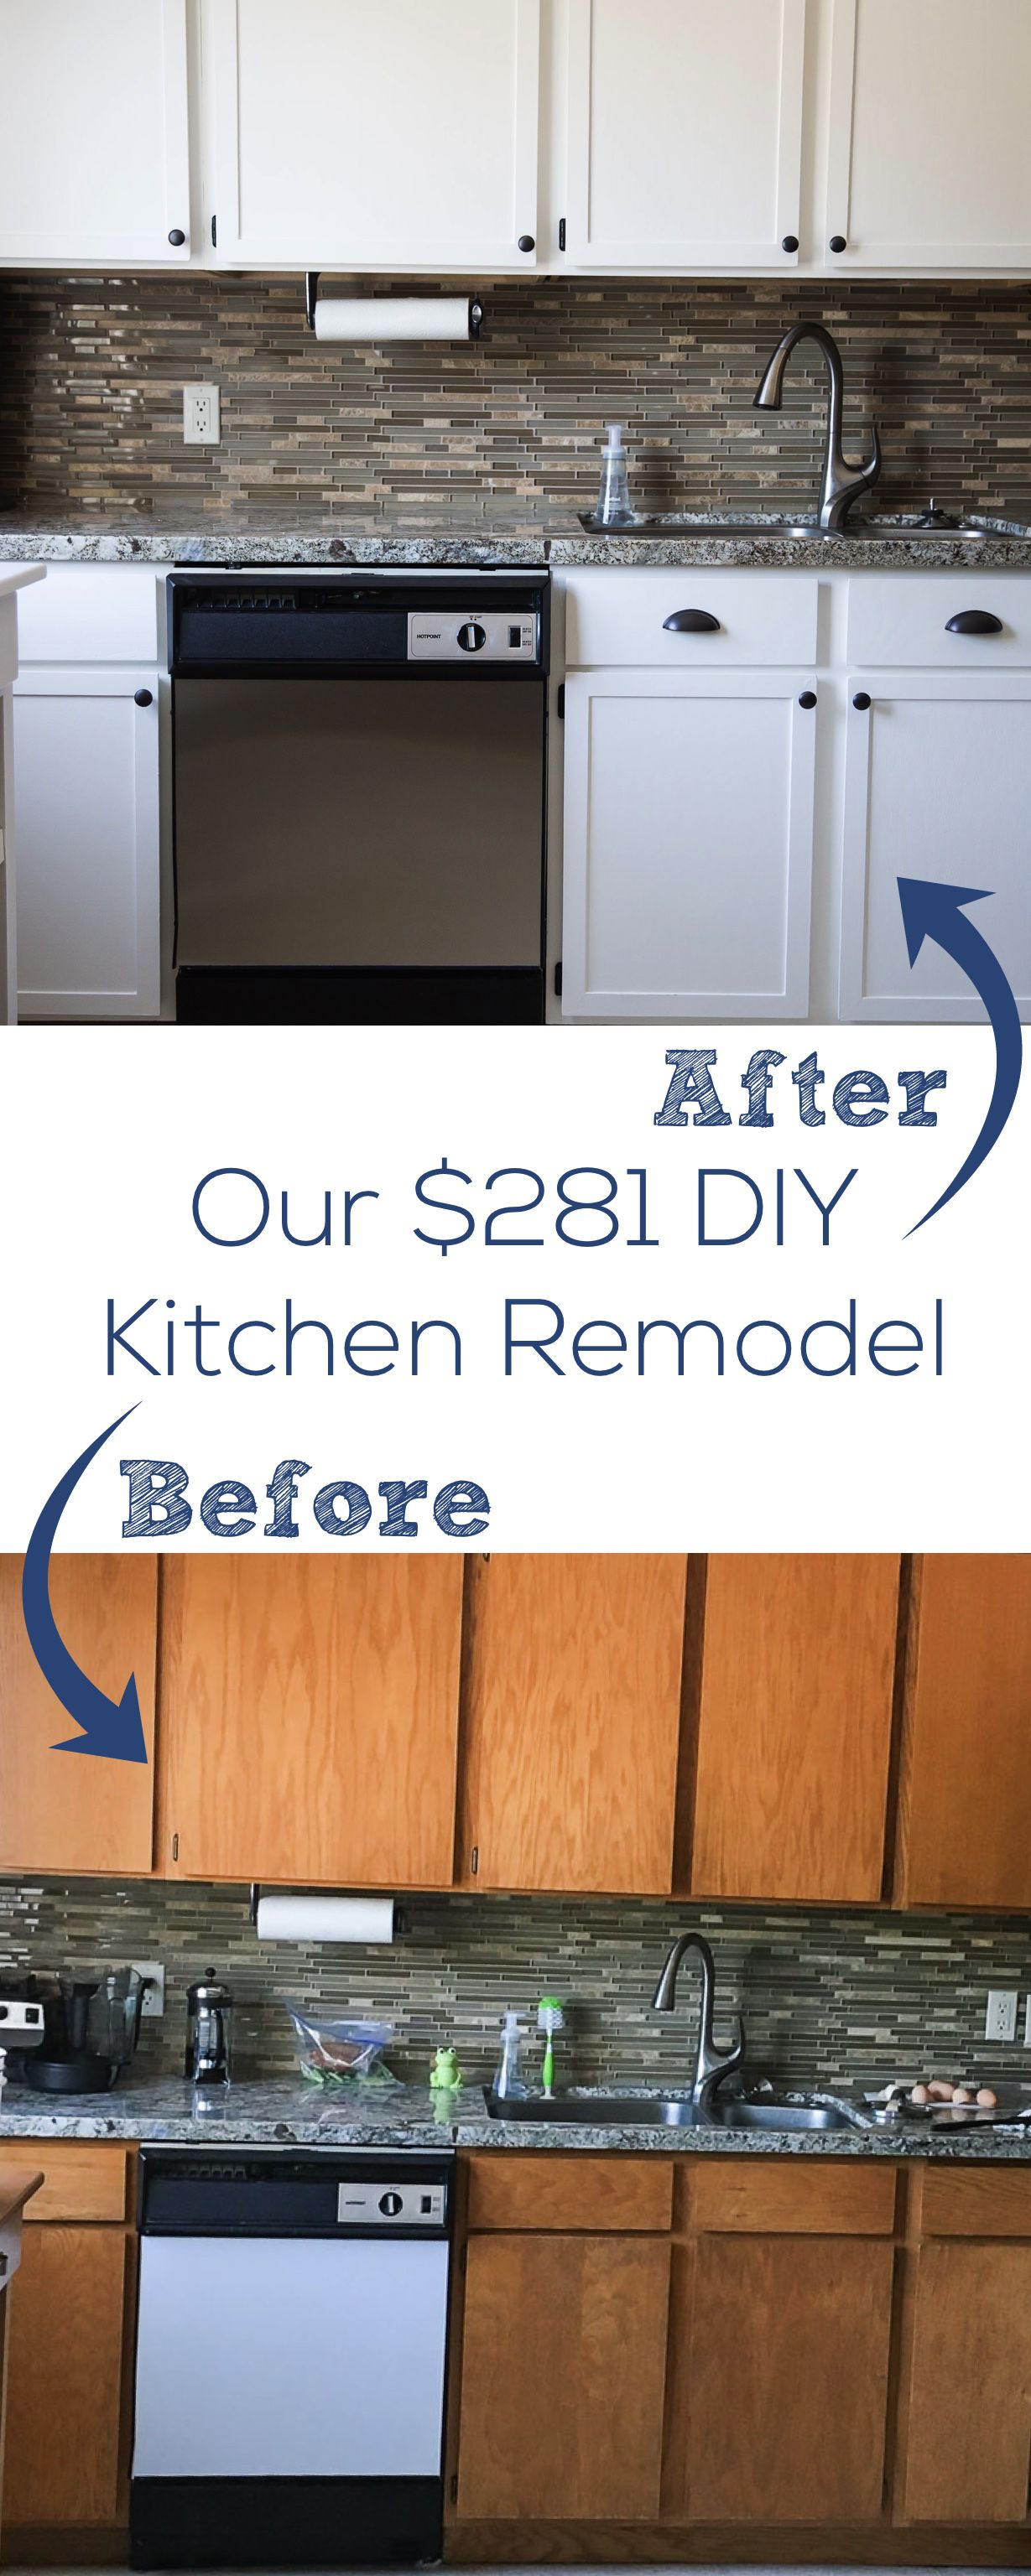 Our $281 DIY Kitchen Remodel - DIY painting oak cabinets white ...